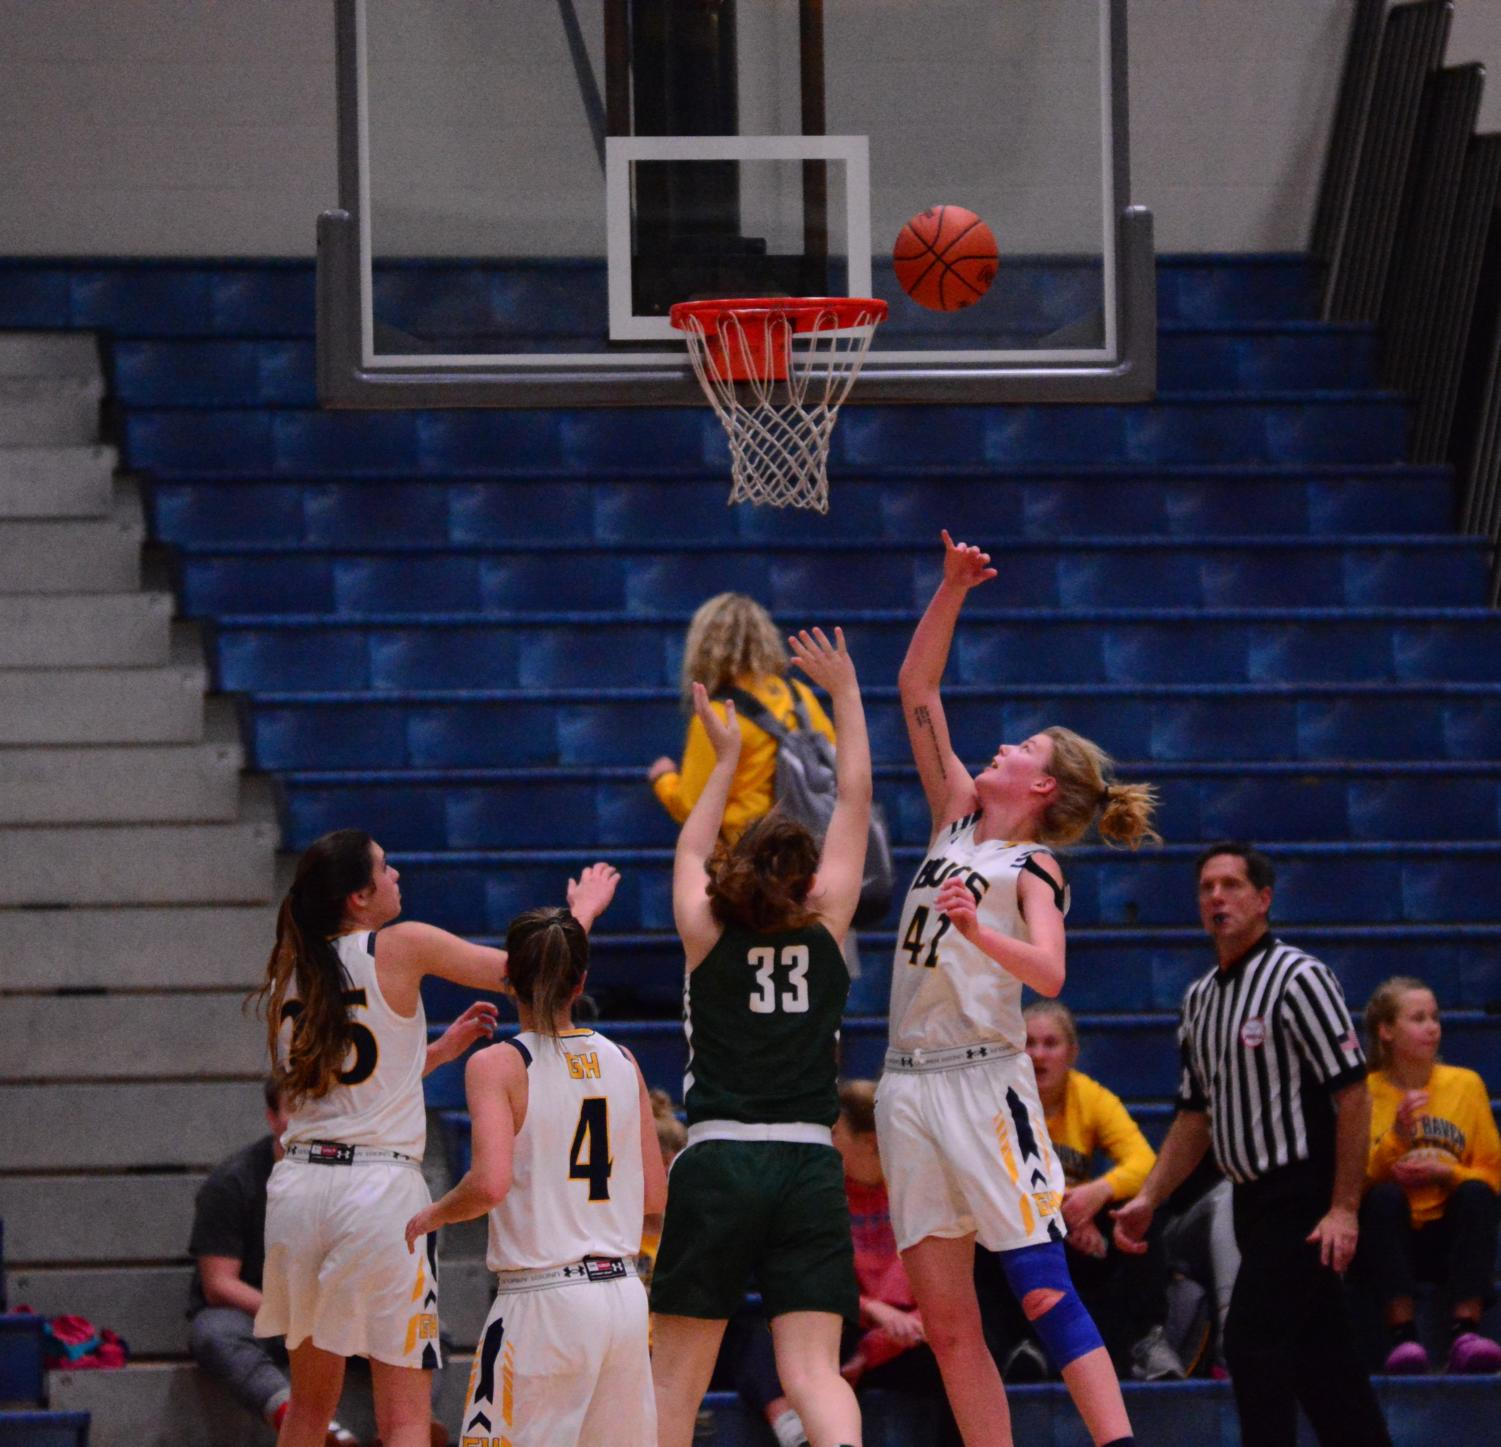 Junior Esther Byington attacks the hoop and puts it off the glass. Not many students were there to witness this great play by the junior.